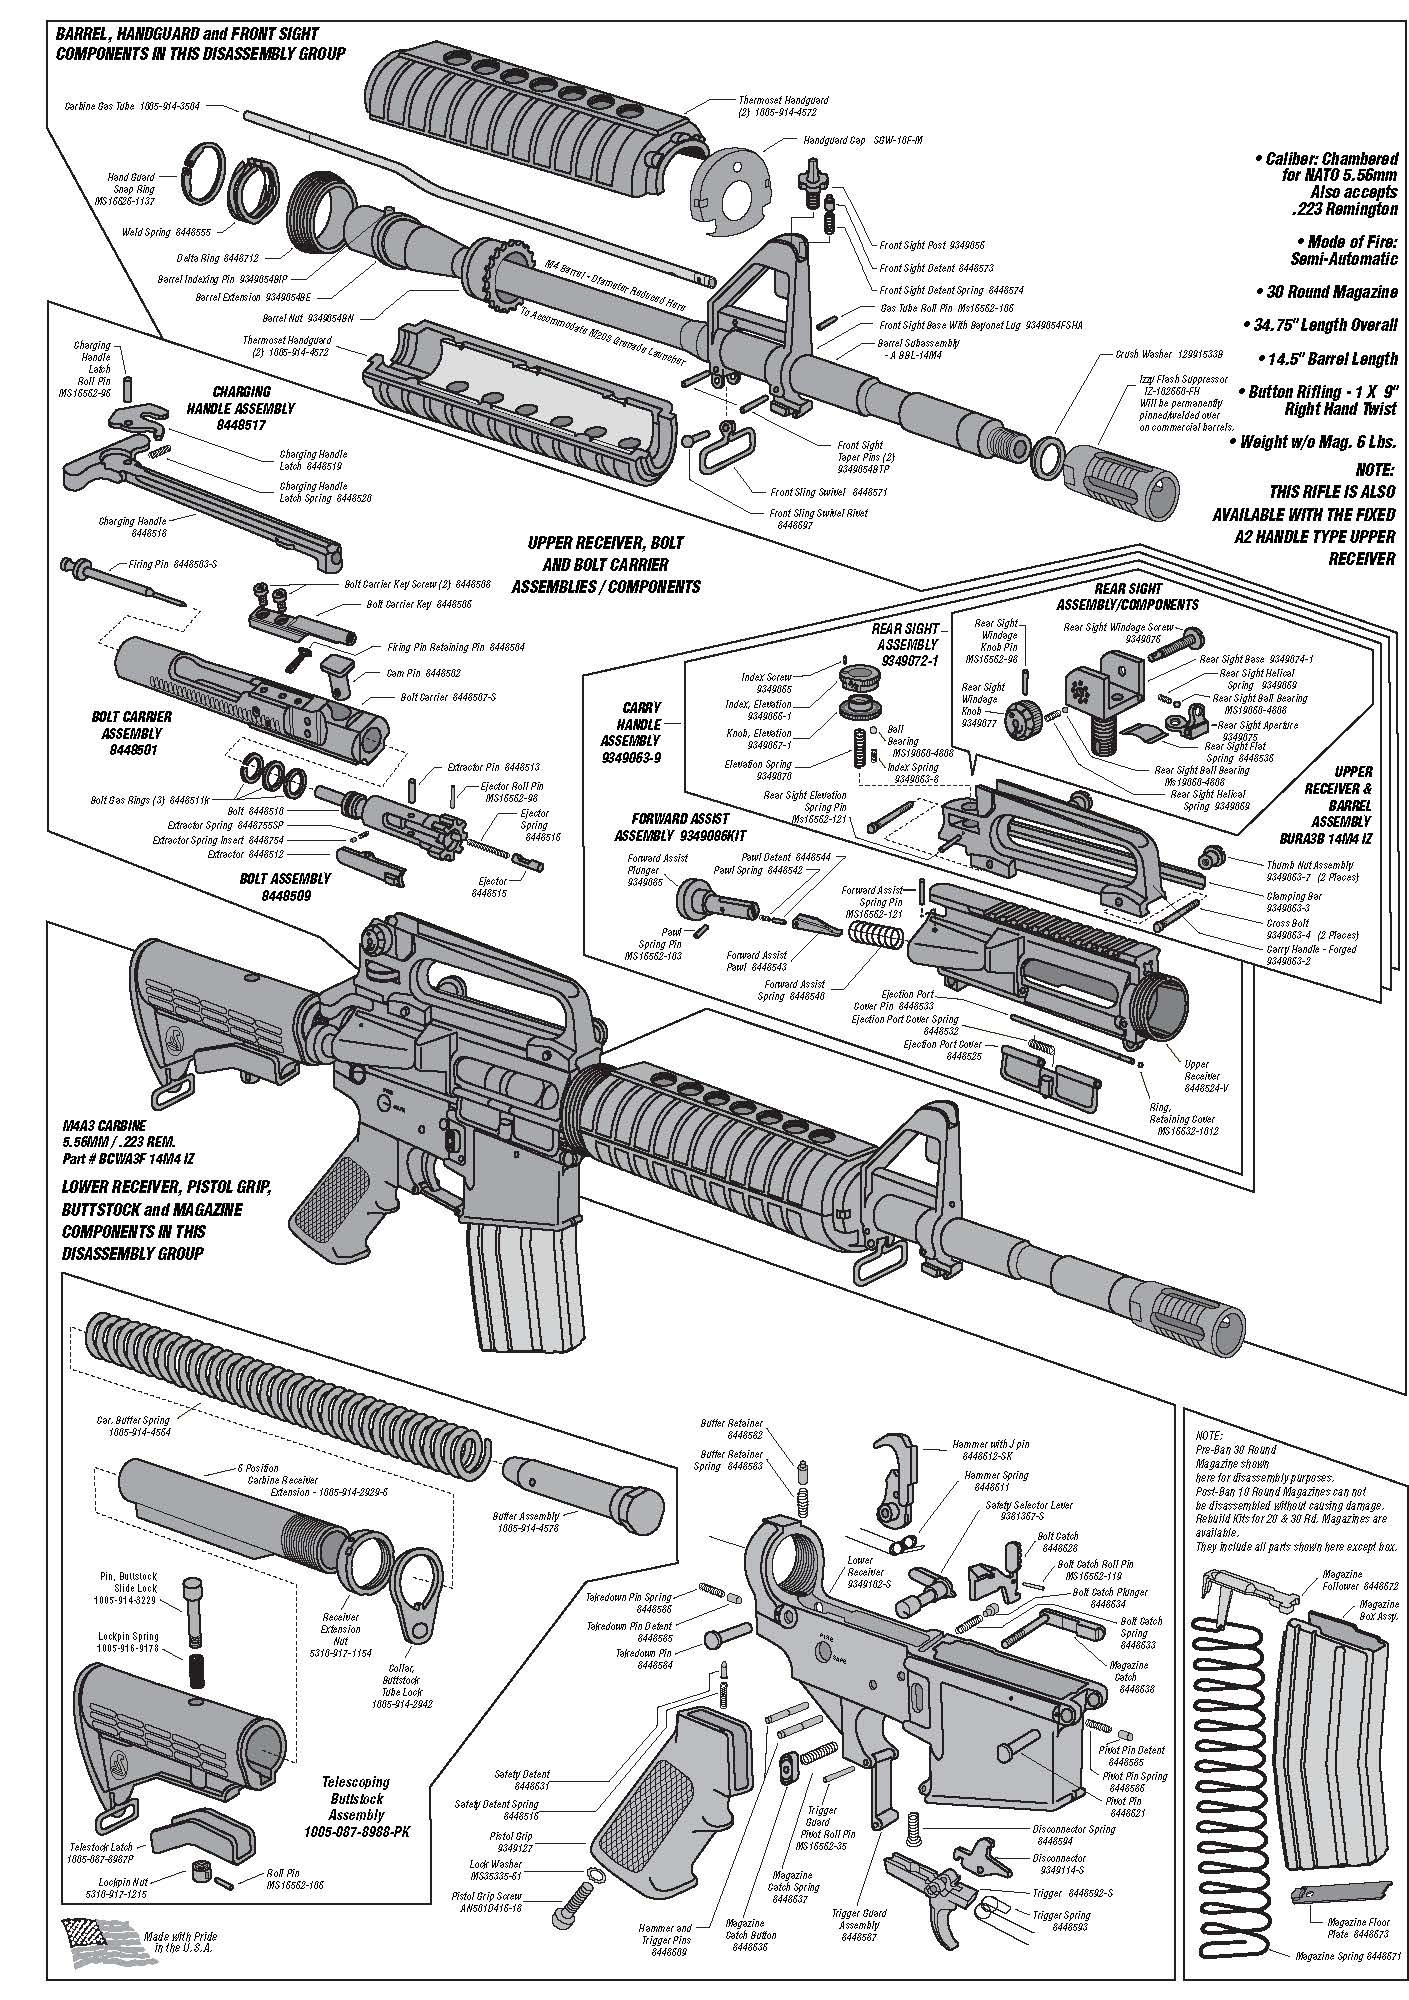 Ar Schematic Technical Drawings Amp Cutaways Pistolet